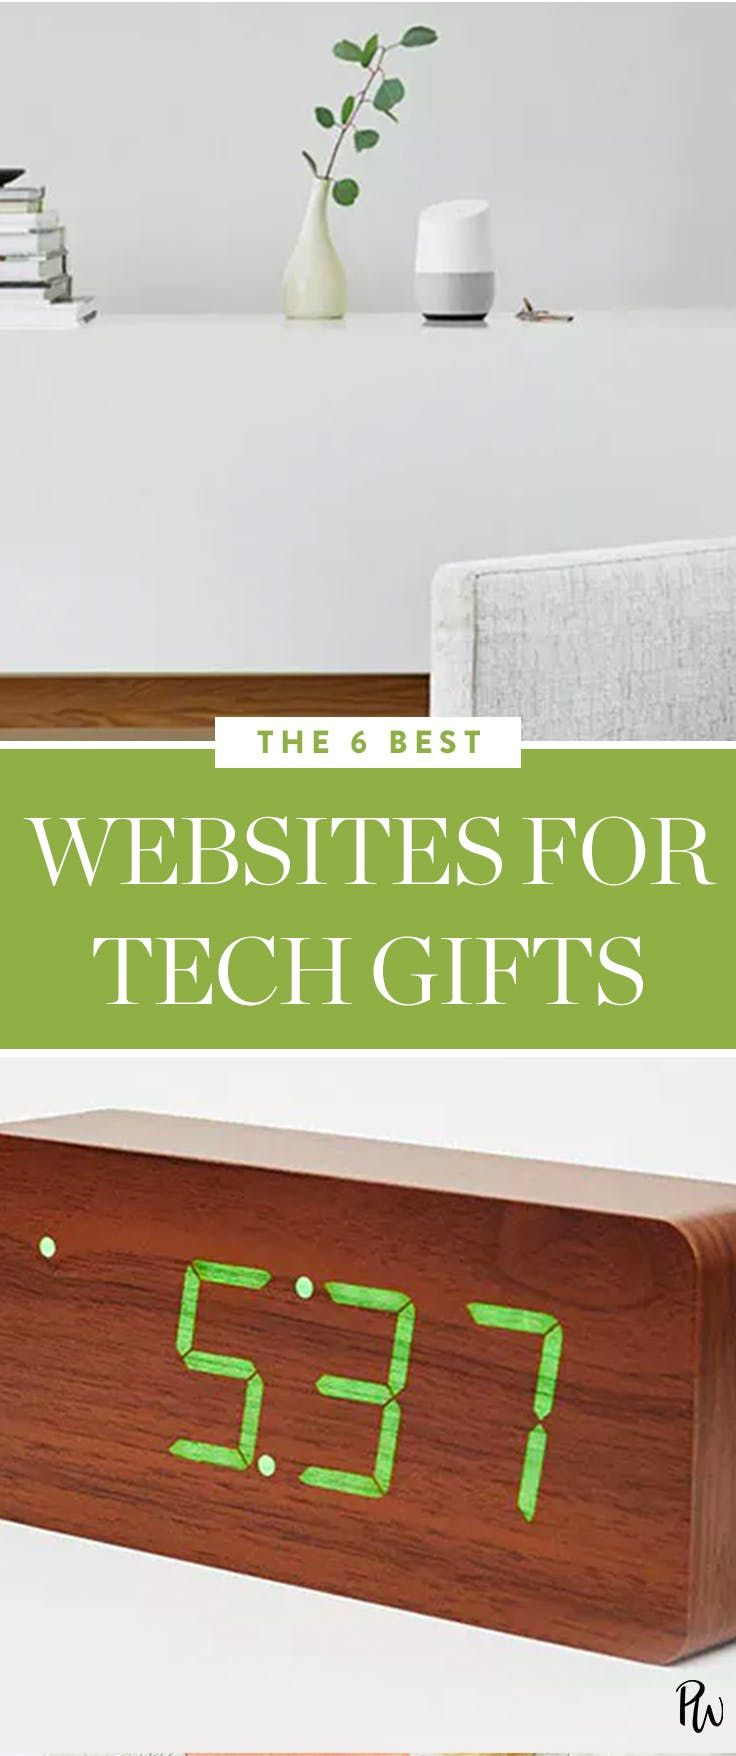 6 of the Best Websites for Tech Gifts | Gift Ideas For Her | Gifts ...